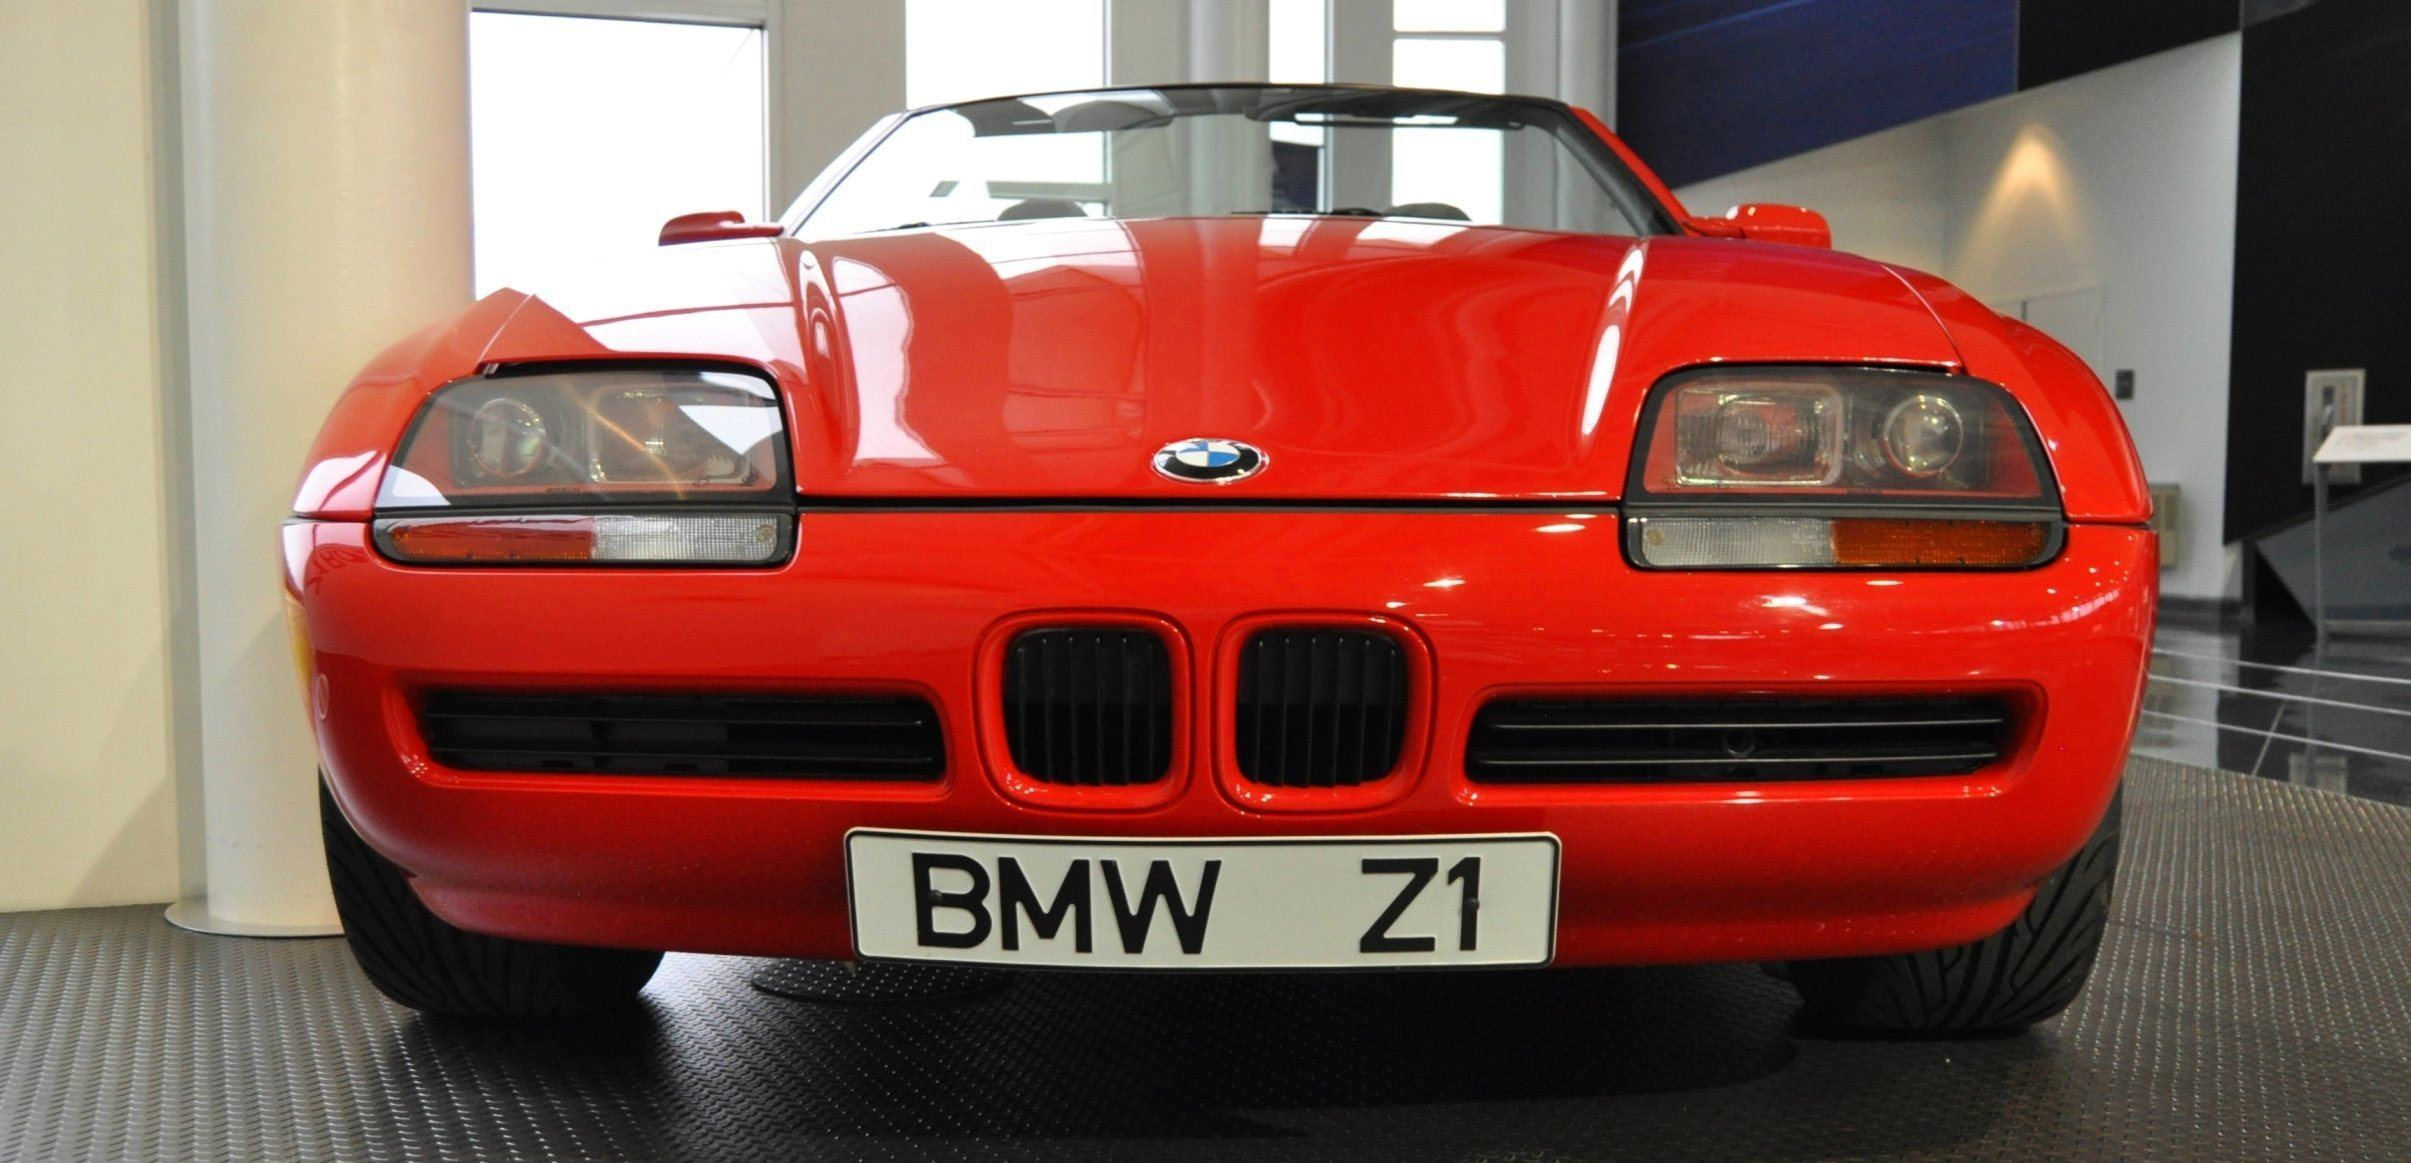 Car-Museums-Showcase-1989-BMW-Z1-at-Zentrum-in-Spartanburg-SC-High-Demand-+-High-Price-Led-Directly-to-US-Built-Z3-11 Stunning Bmw Z1 Hardtop for Sale Cars Trend